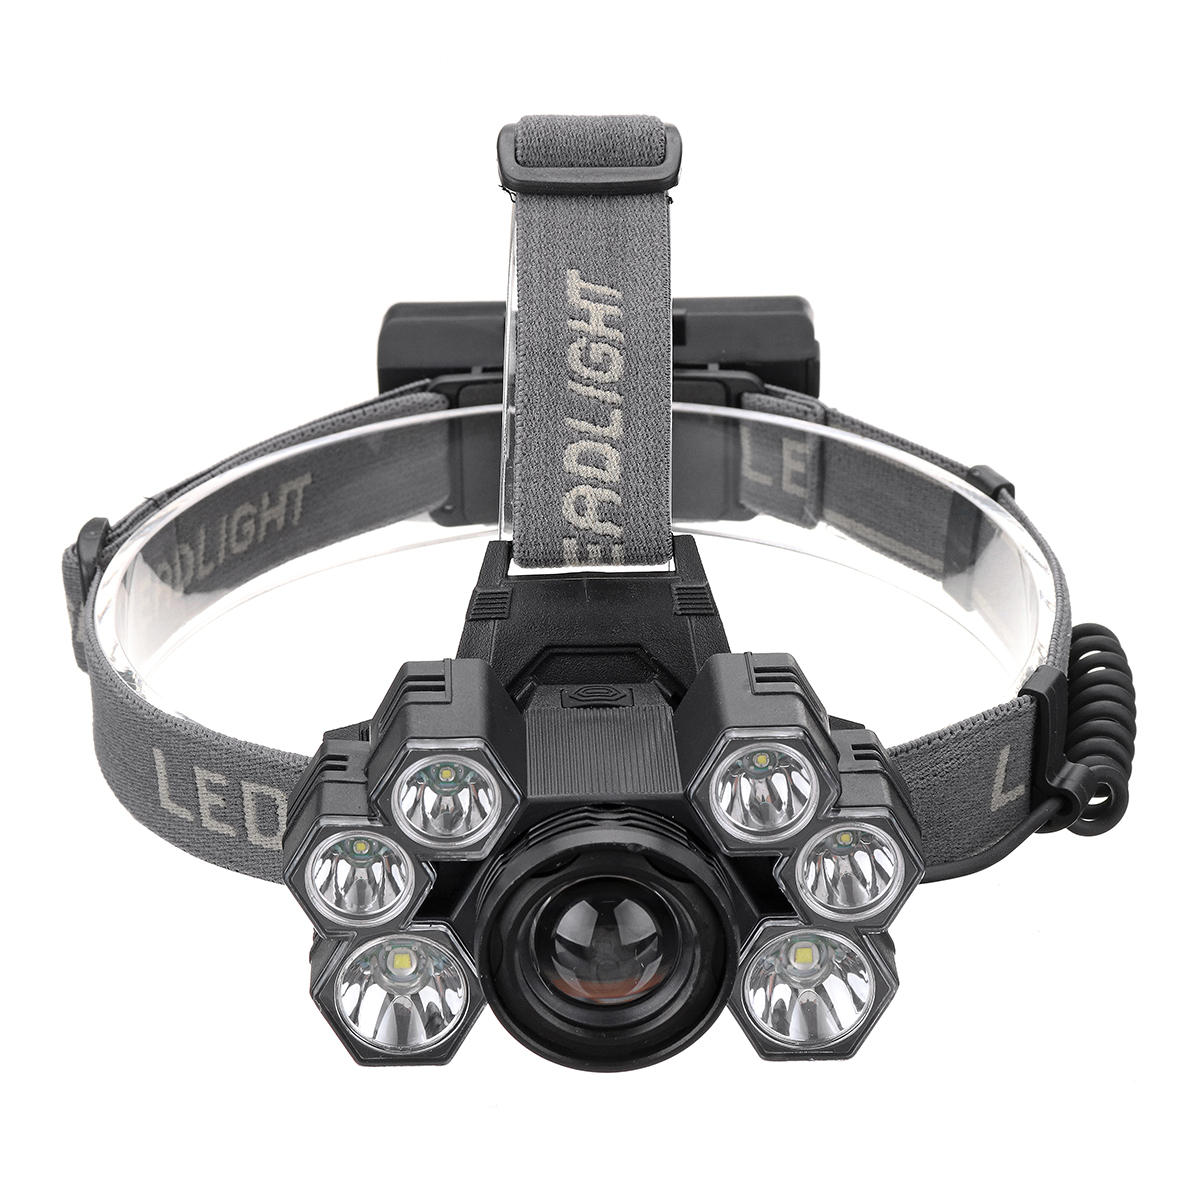 BORUiT B50 L2+4xXPG2 1200LM 6 Modes 160°Rotatable Type-C Headlamp Outdoor Cycling Camping Multifunctional Headlamp - 2